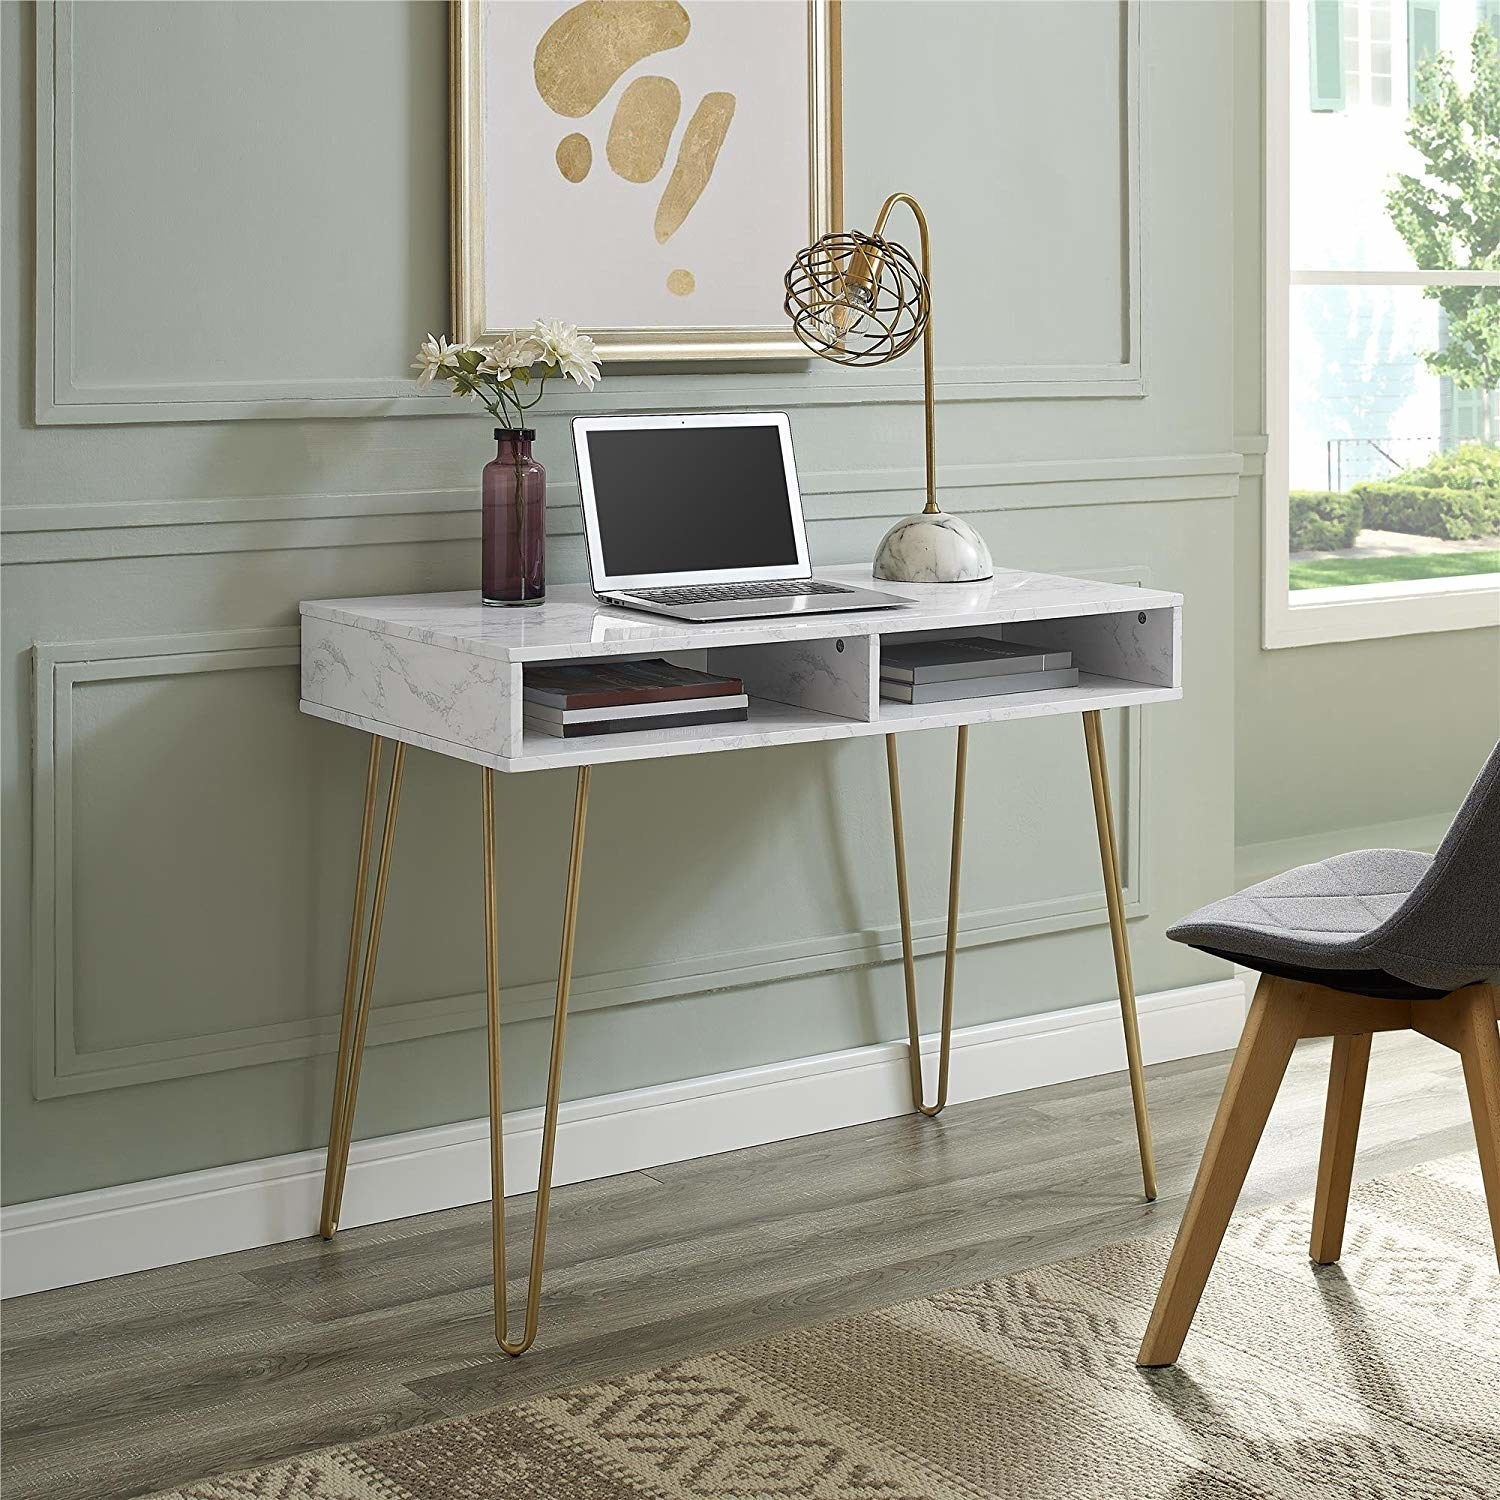 Faux-marble top desk with two open drawers and gold metal legs